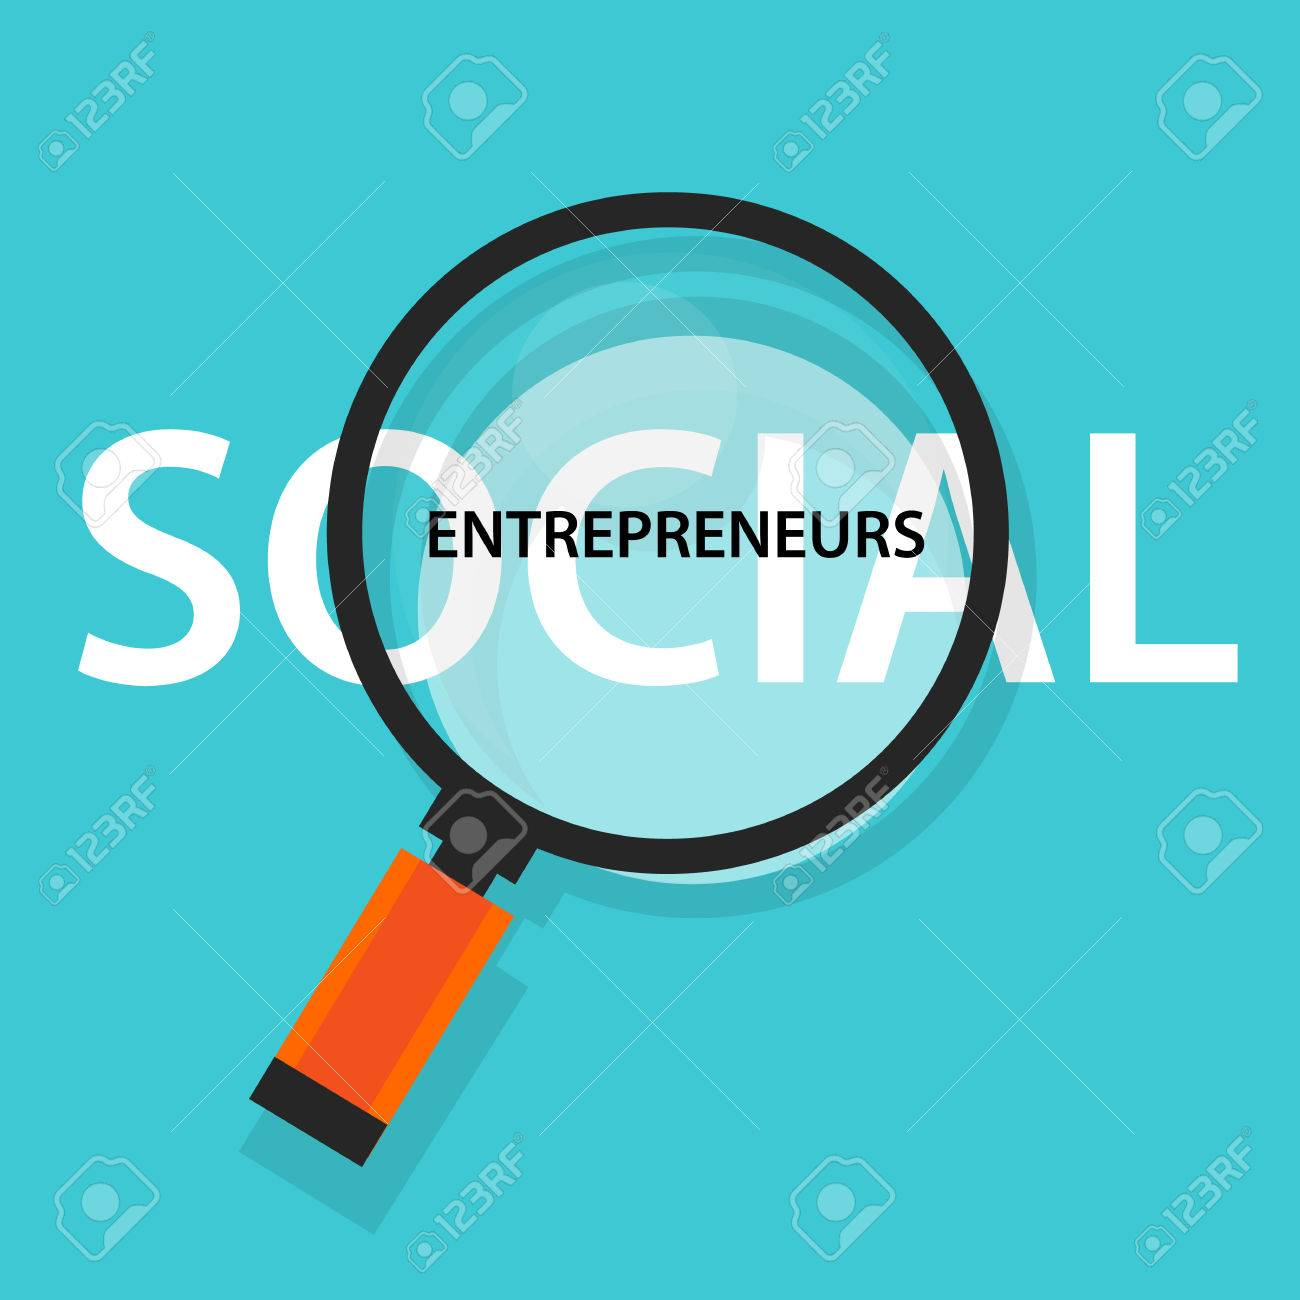 Social entrepreneurs concept of business with good impact developing